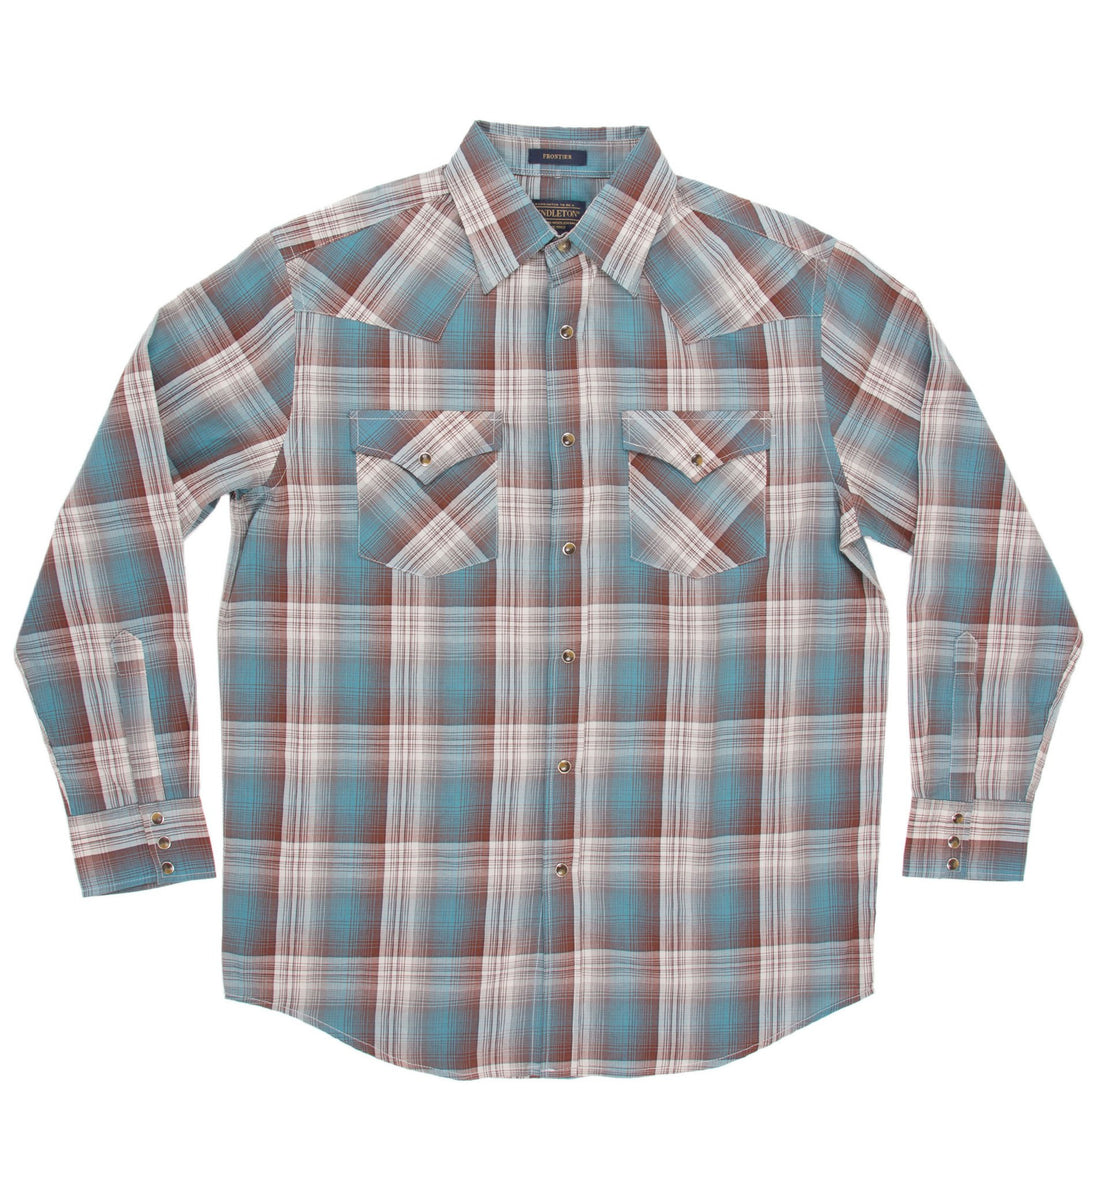 Pendleton Frontier Shirt - Apparel: Men's: Wovens - Iron and Resin